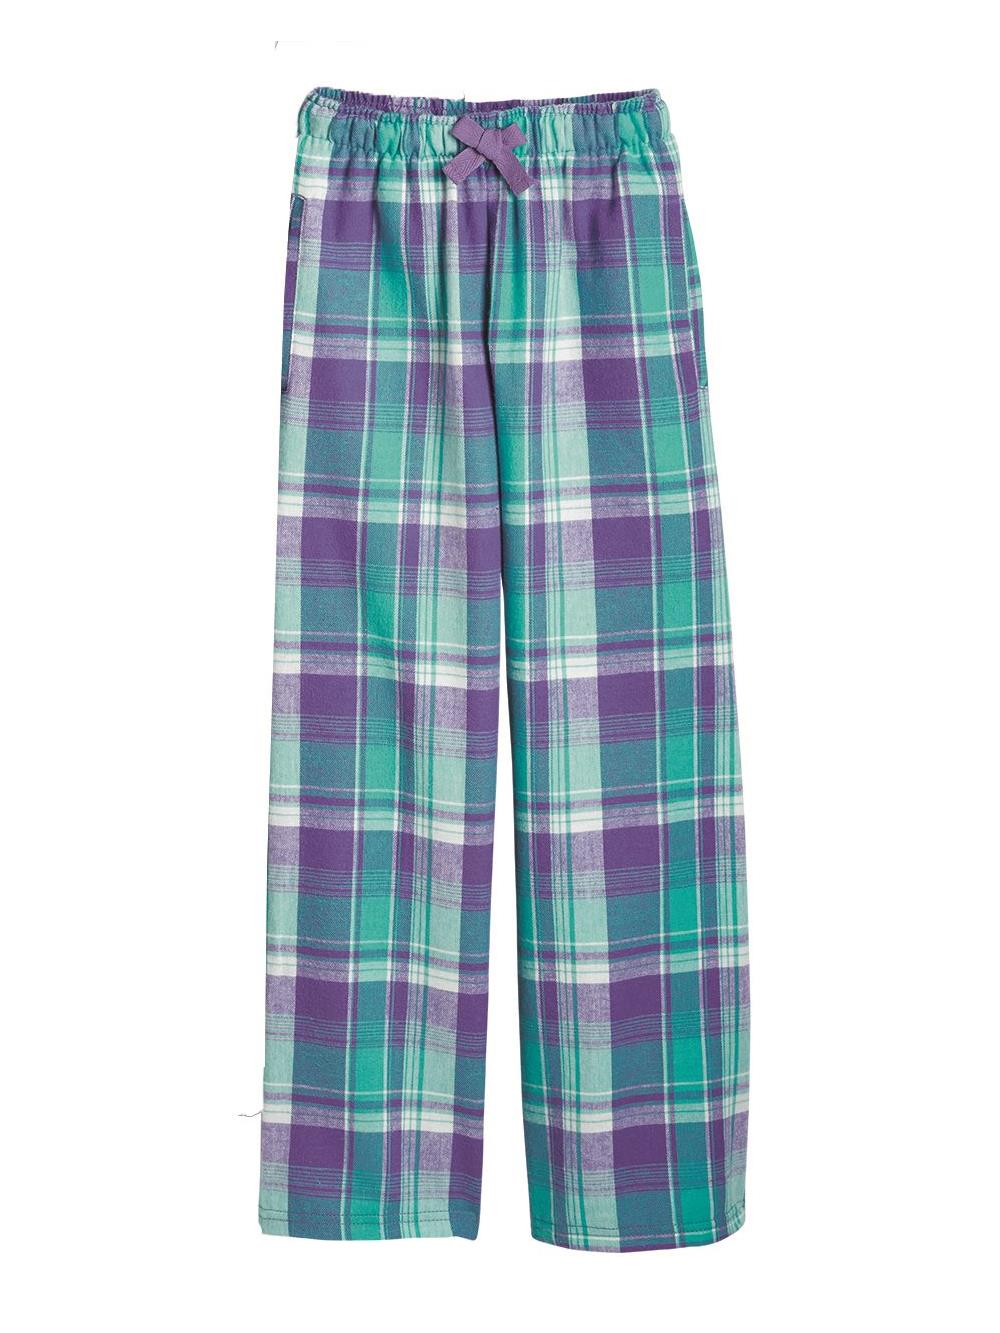 Boxercraft Wovens - Fall Youth Flannel Pants with Pockets Y20